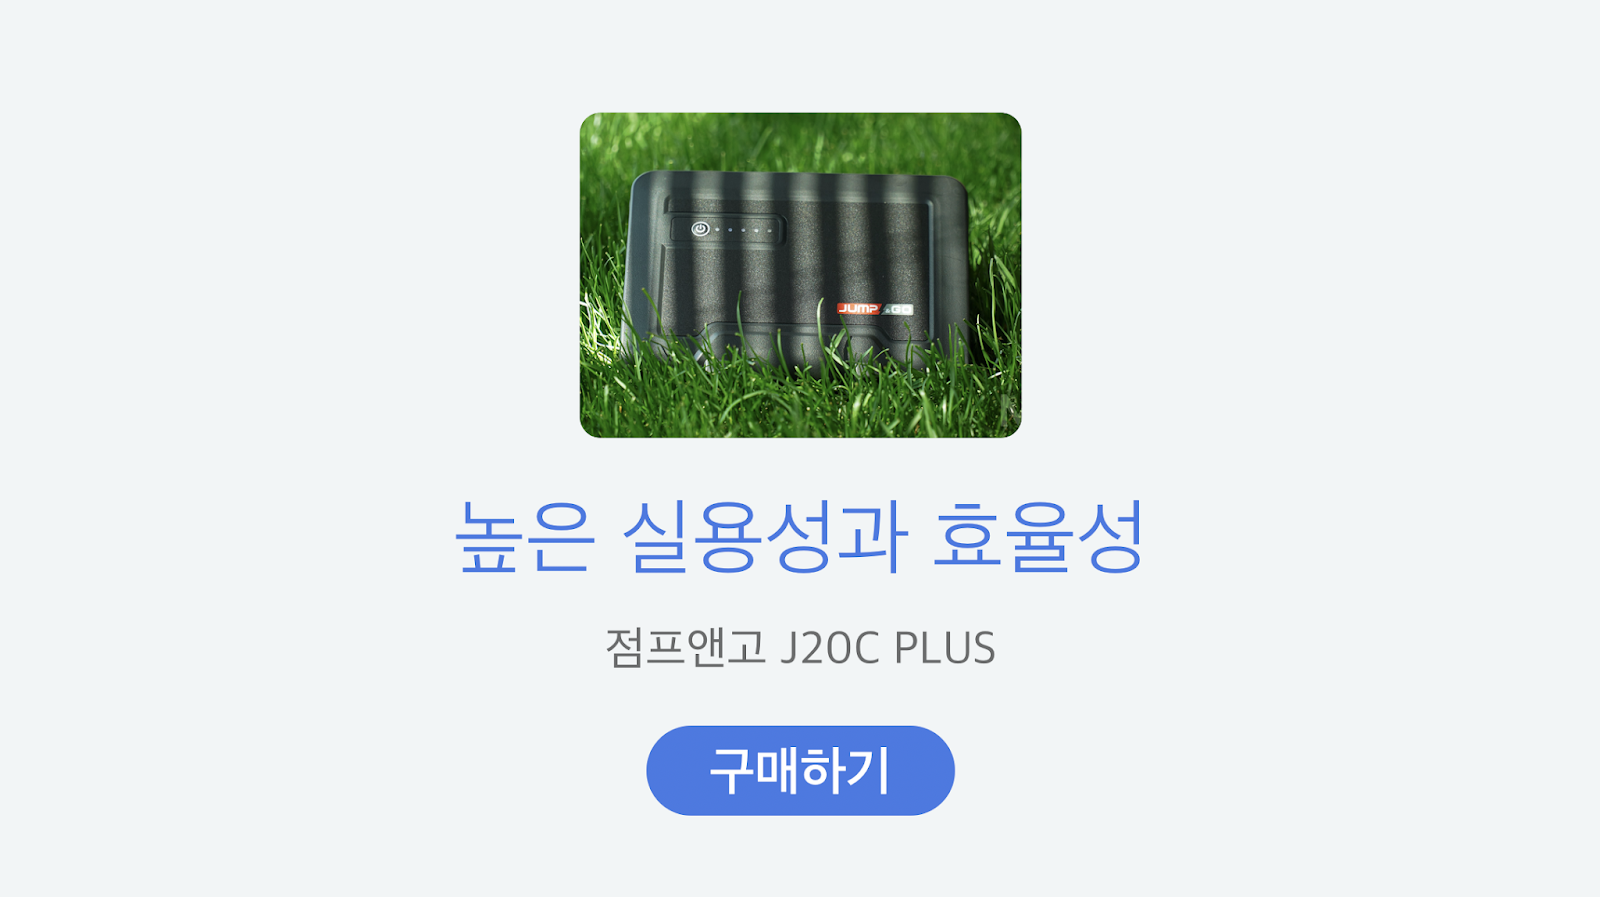 https://store.enercamp.kr/goods/goods_view.php?goodsNo=1000000405